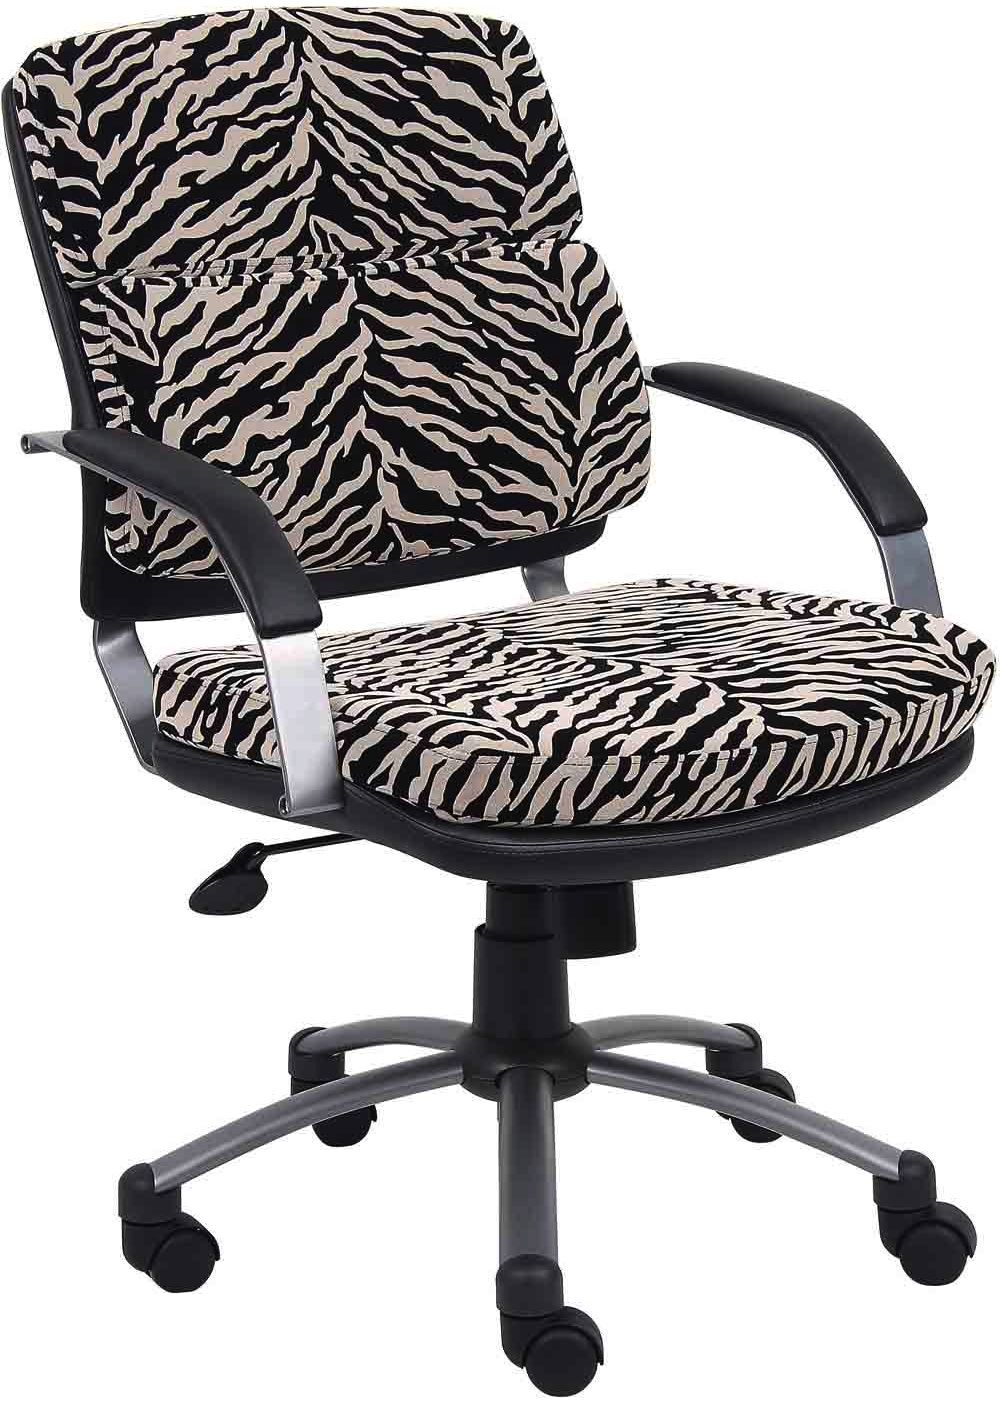 Office Chair All Things Zebra Zebra Chair Contemporary